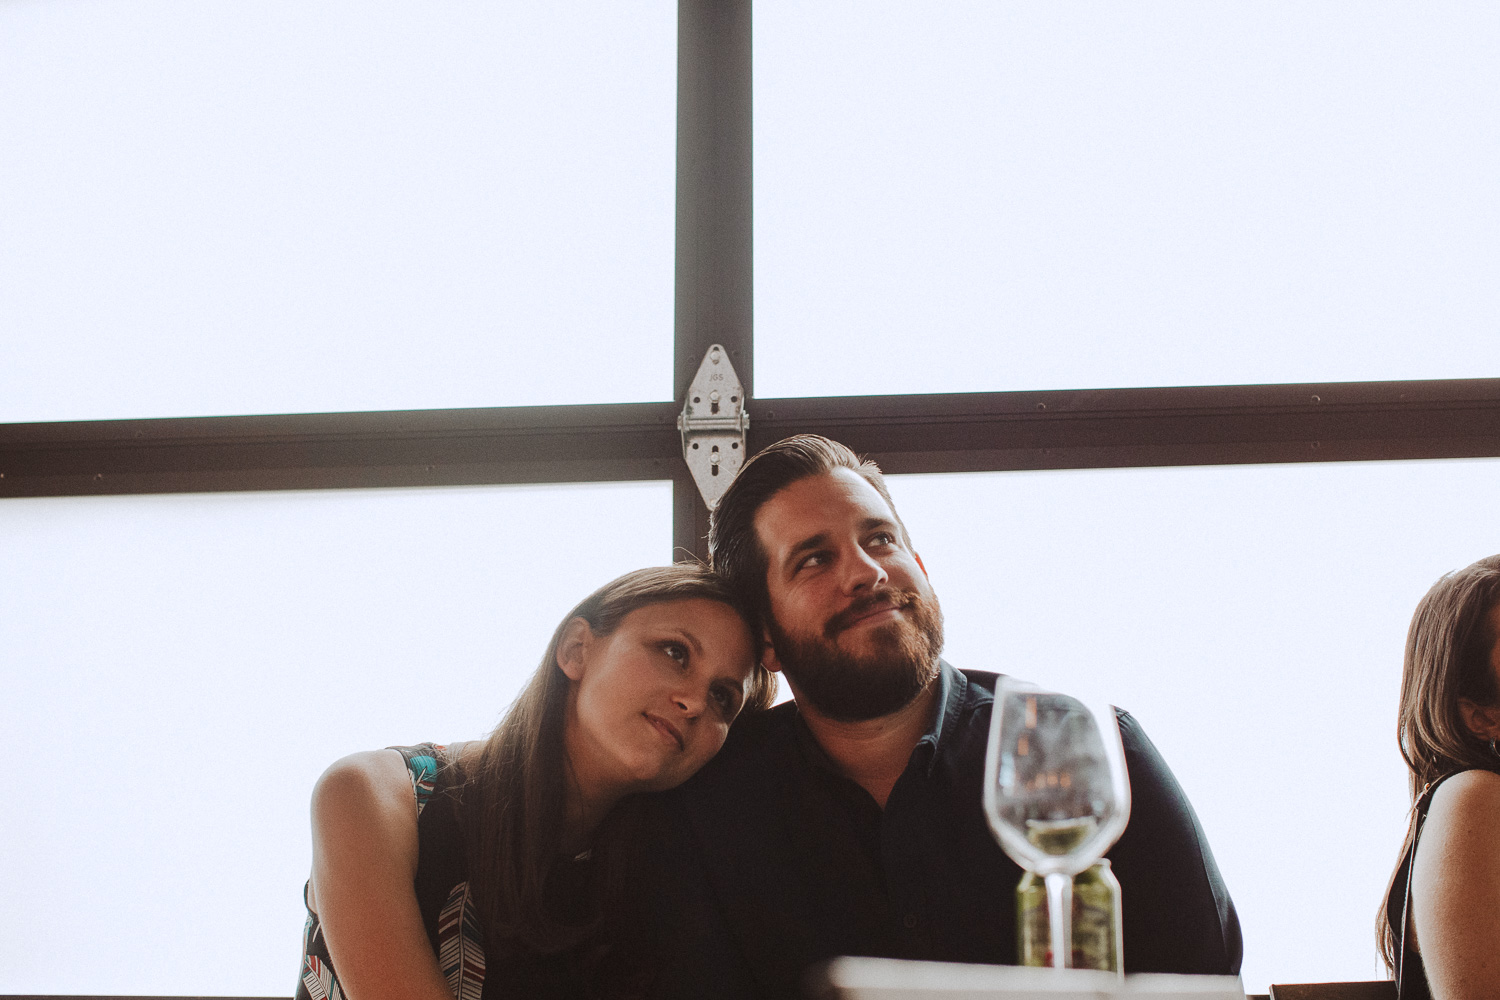 Brooklyn Brewery Rehearsal Dinner | BERG'N